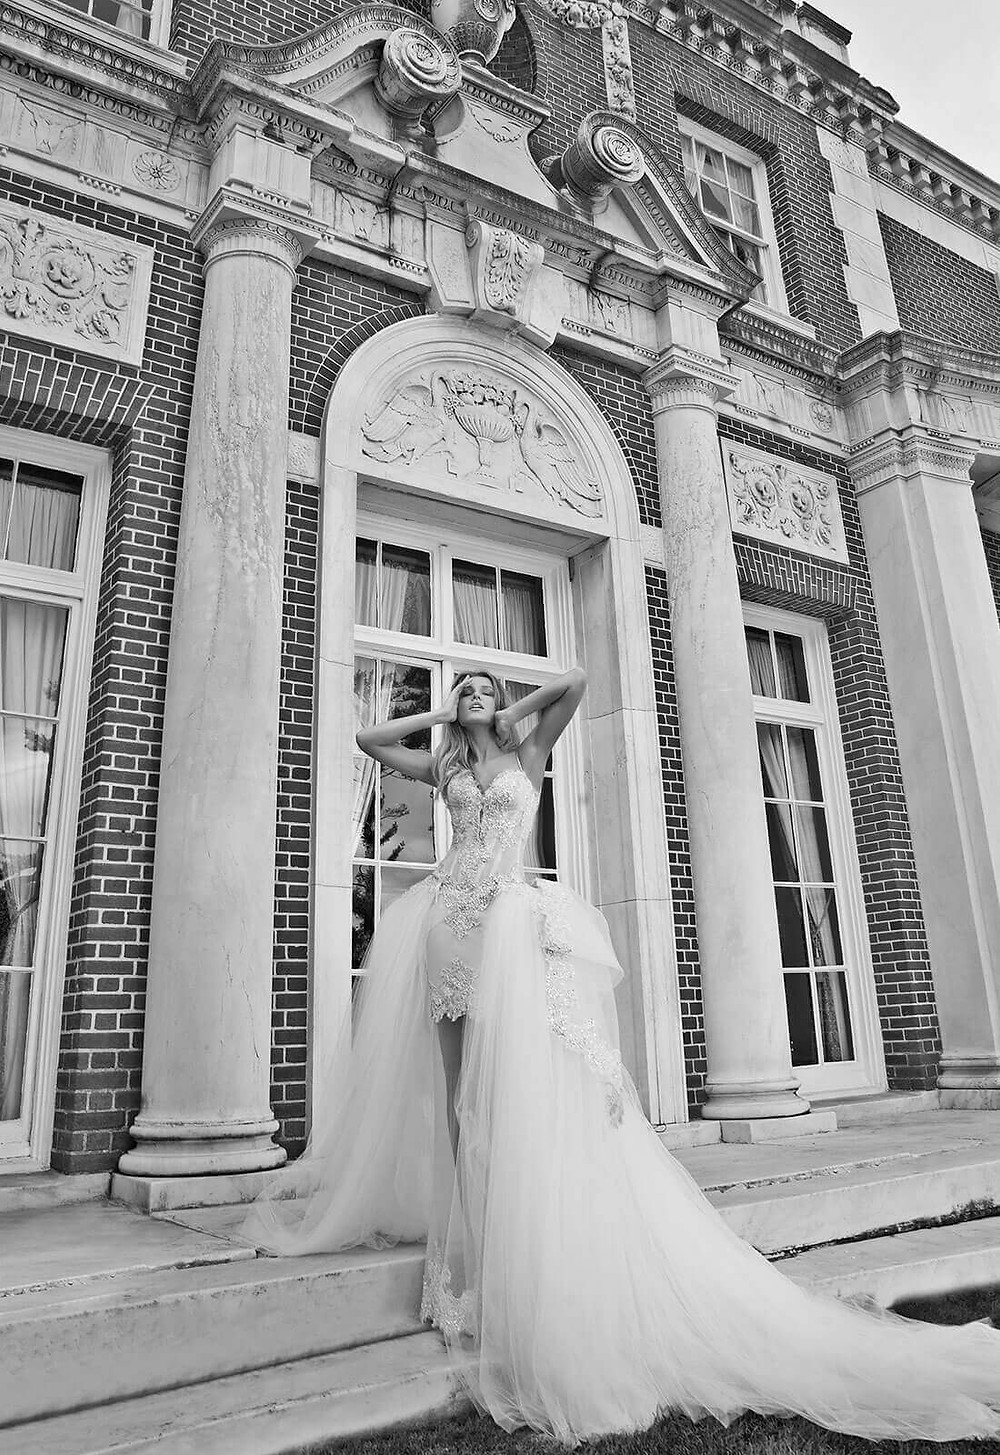 Weddinspired | 50+ Detachable Skirt Wedding Dresses | Pnina Tornai from the Butterfly collection